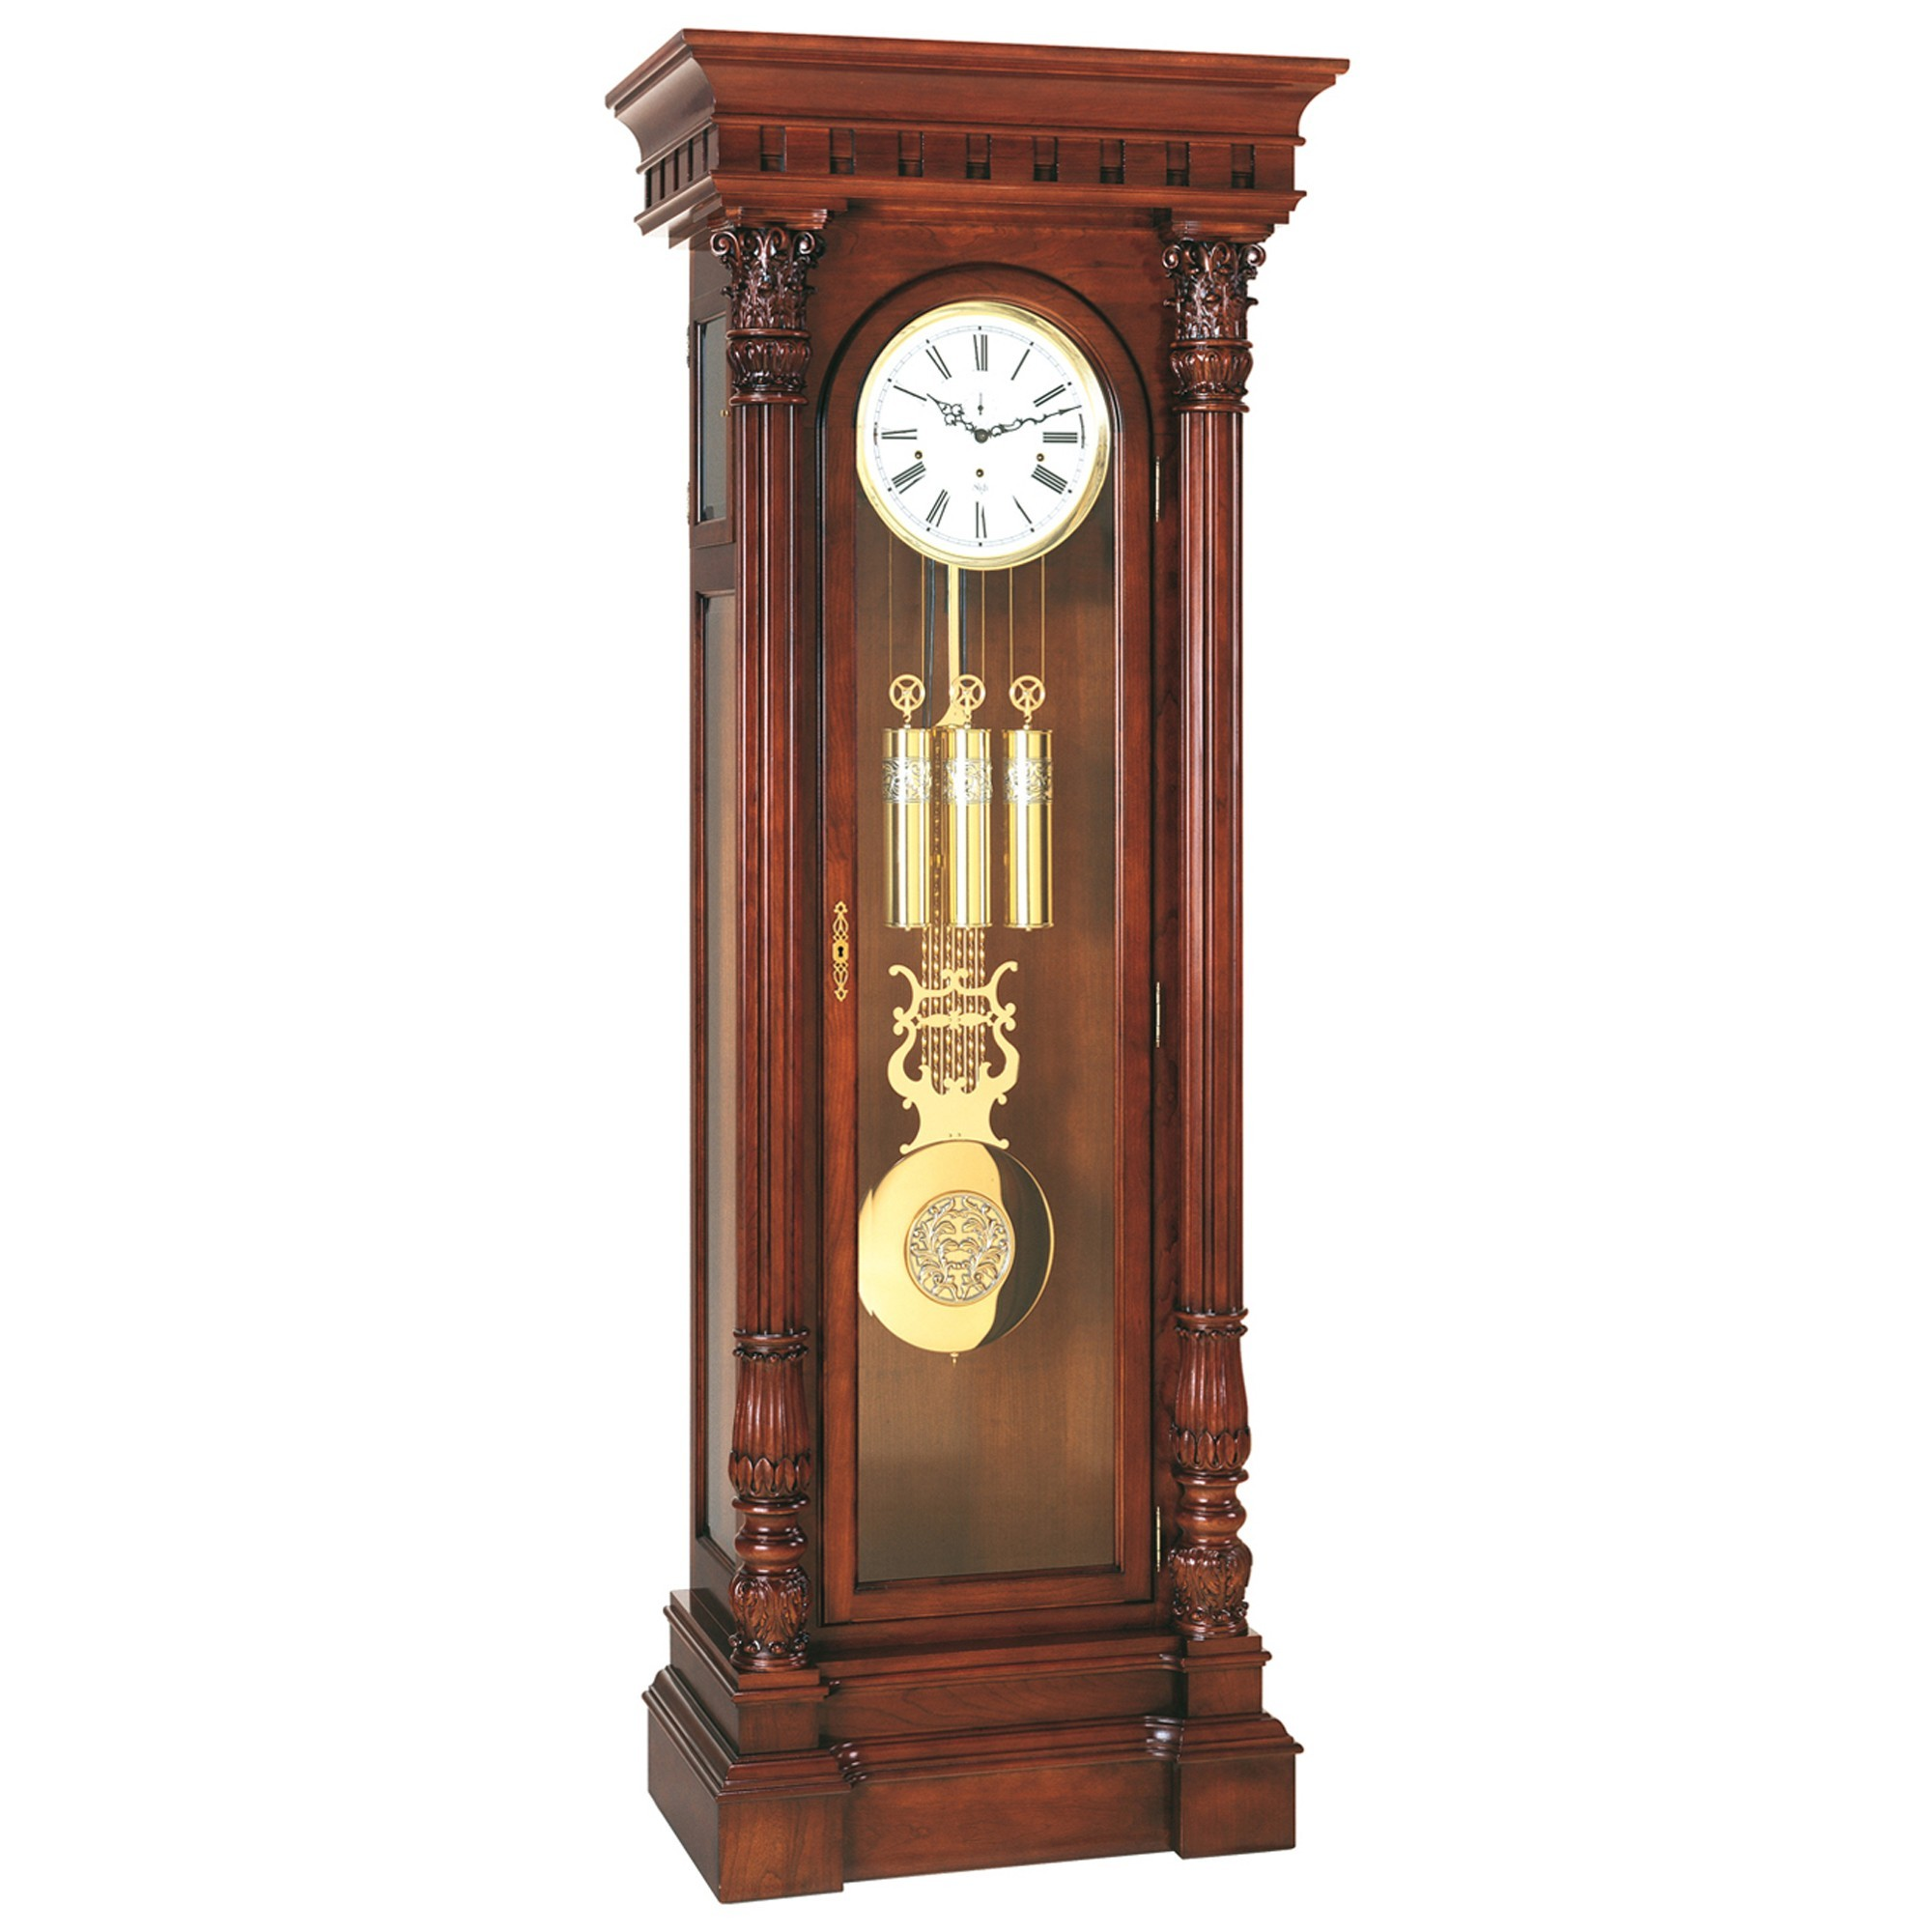 Prestige Mahogany Grandfather Clock Grandfather Clocks